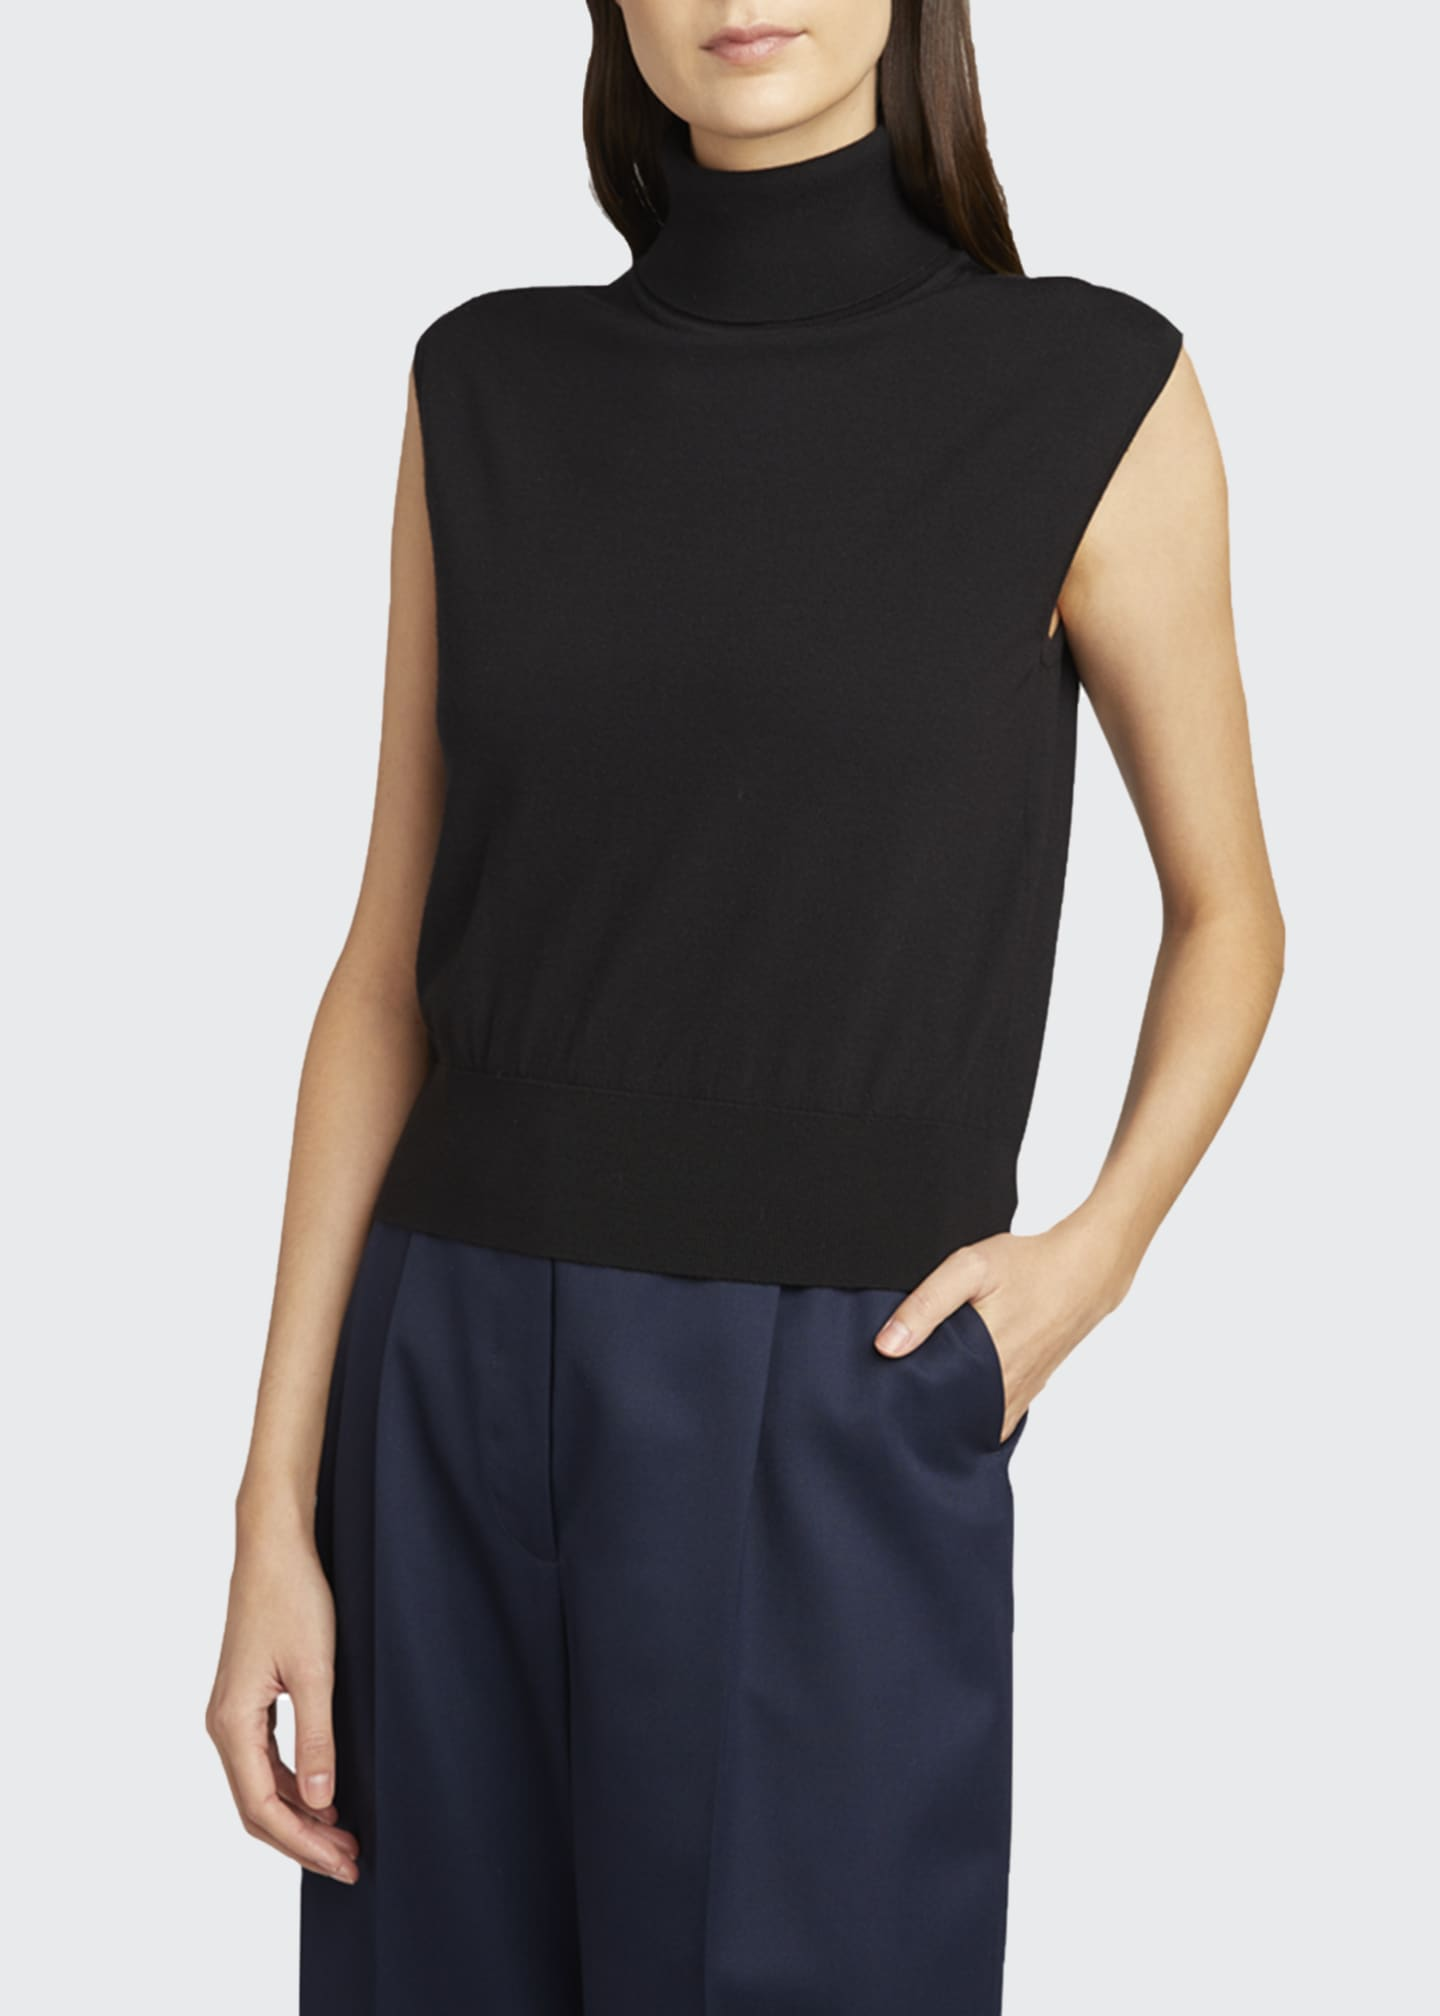 Image 3 of 3: Chano Cashmere Turtleneck Top